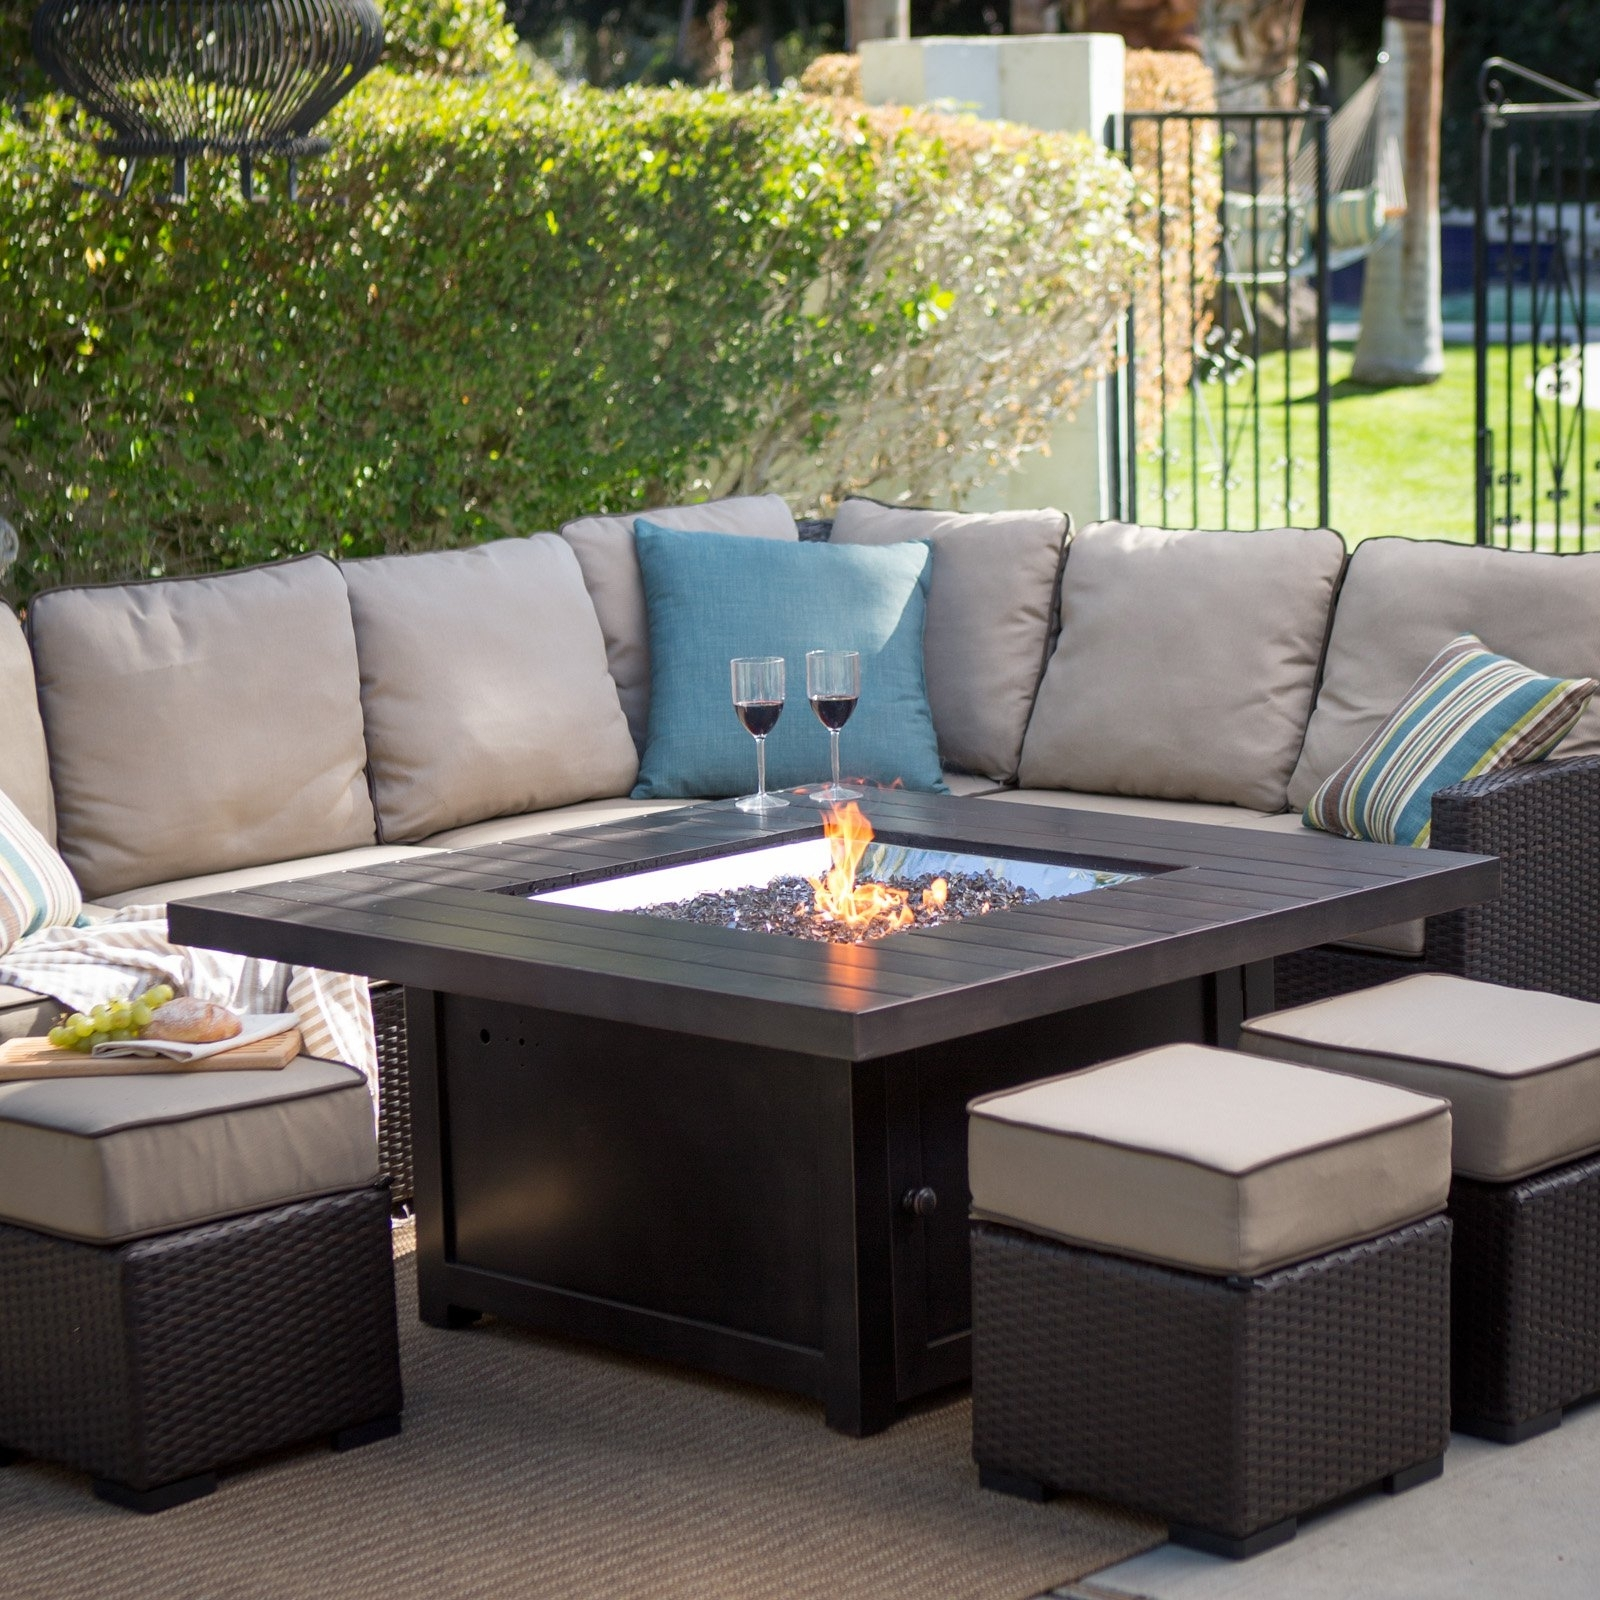 Preferred Furniture: High Quality Patio Furniture Columbus Ohio And Fire Pit Within Conversation Patio Sets With Outdoor Sectionals (View 7 of 20)